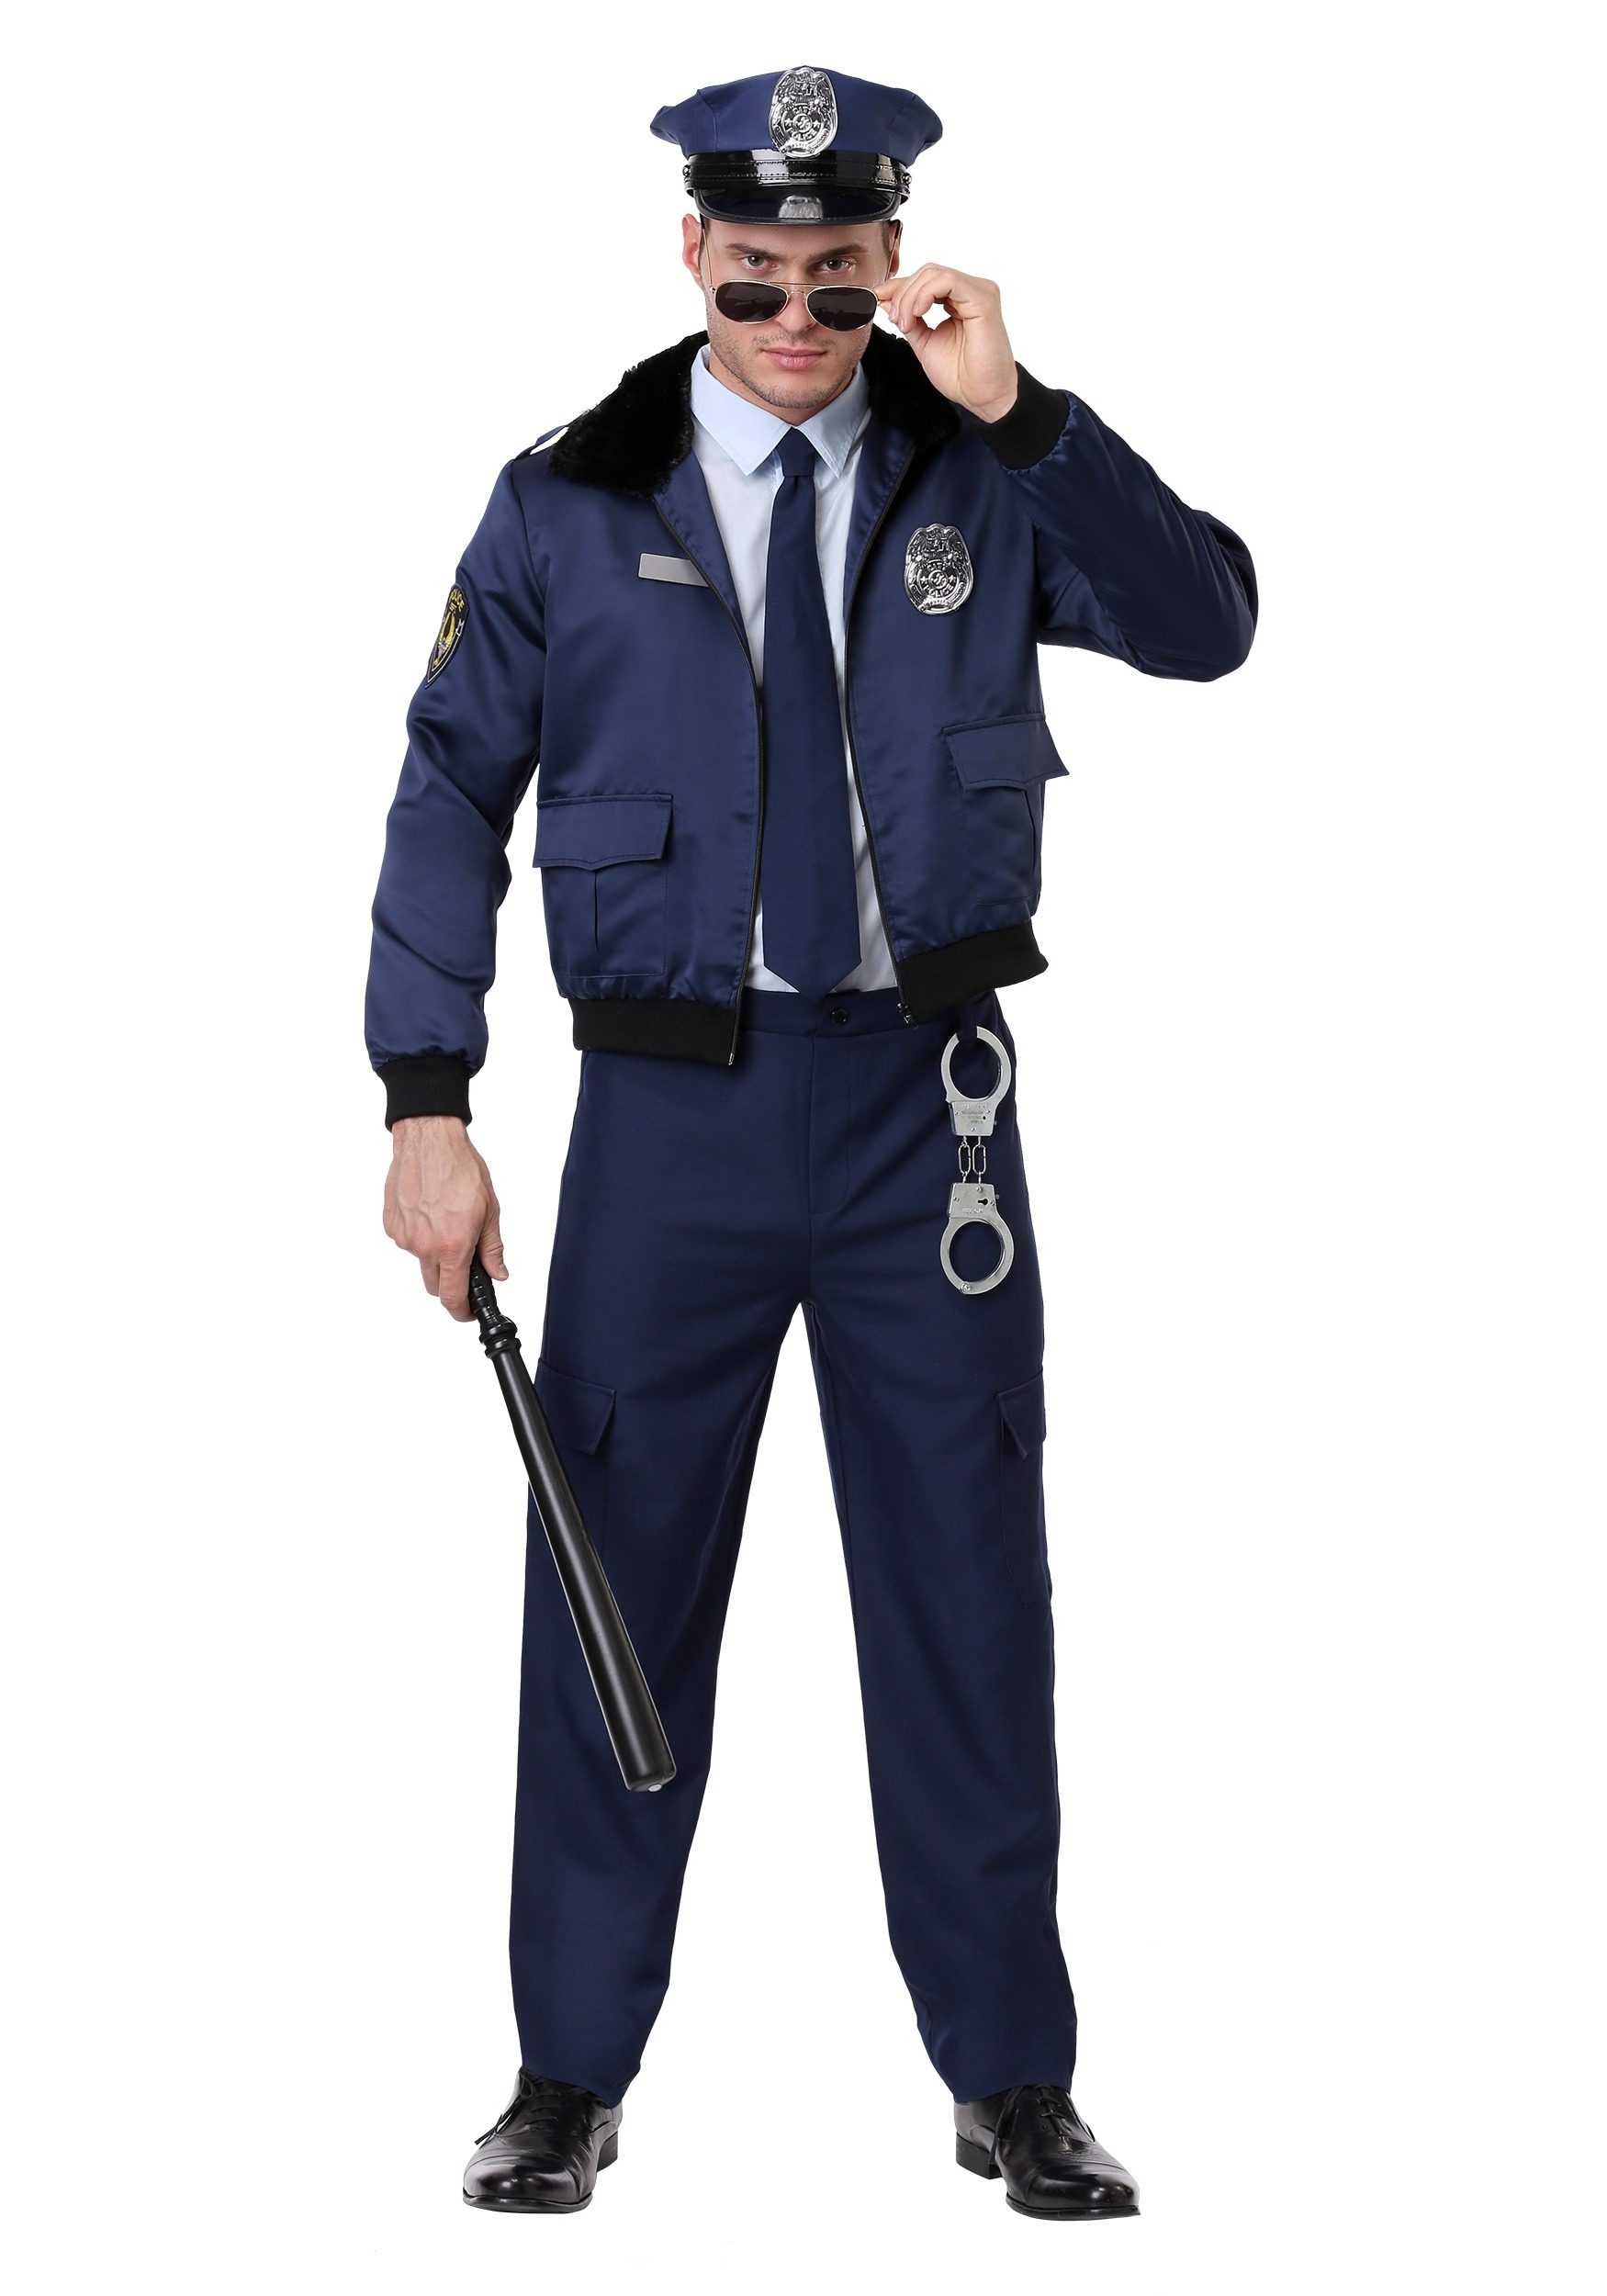 Police Officer Kit for Adult